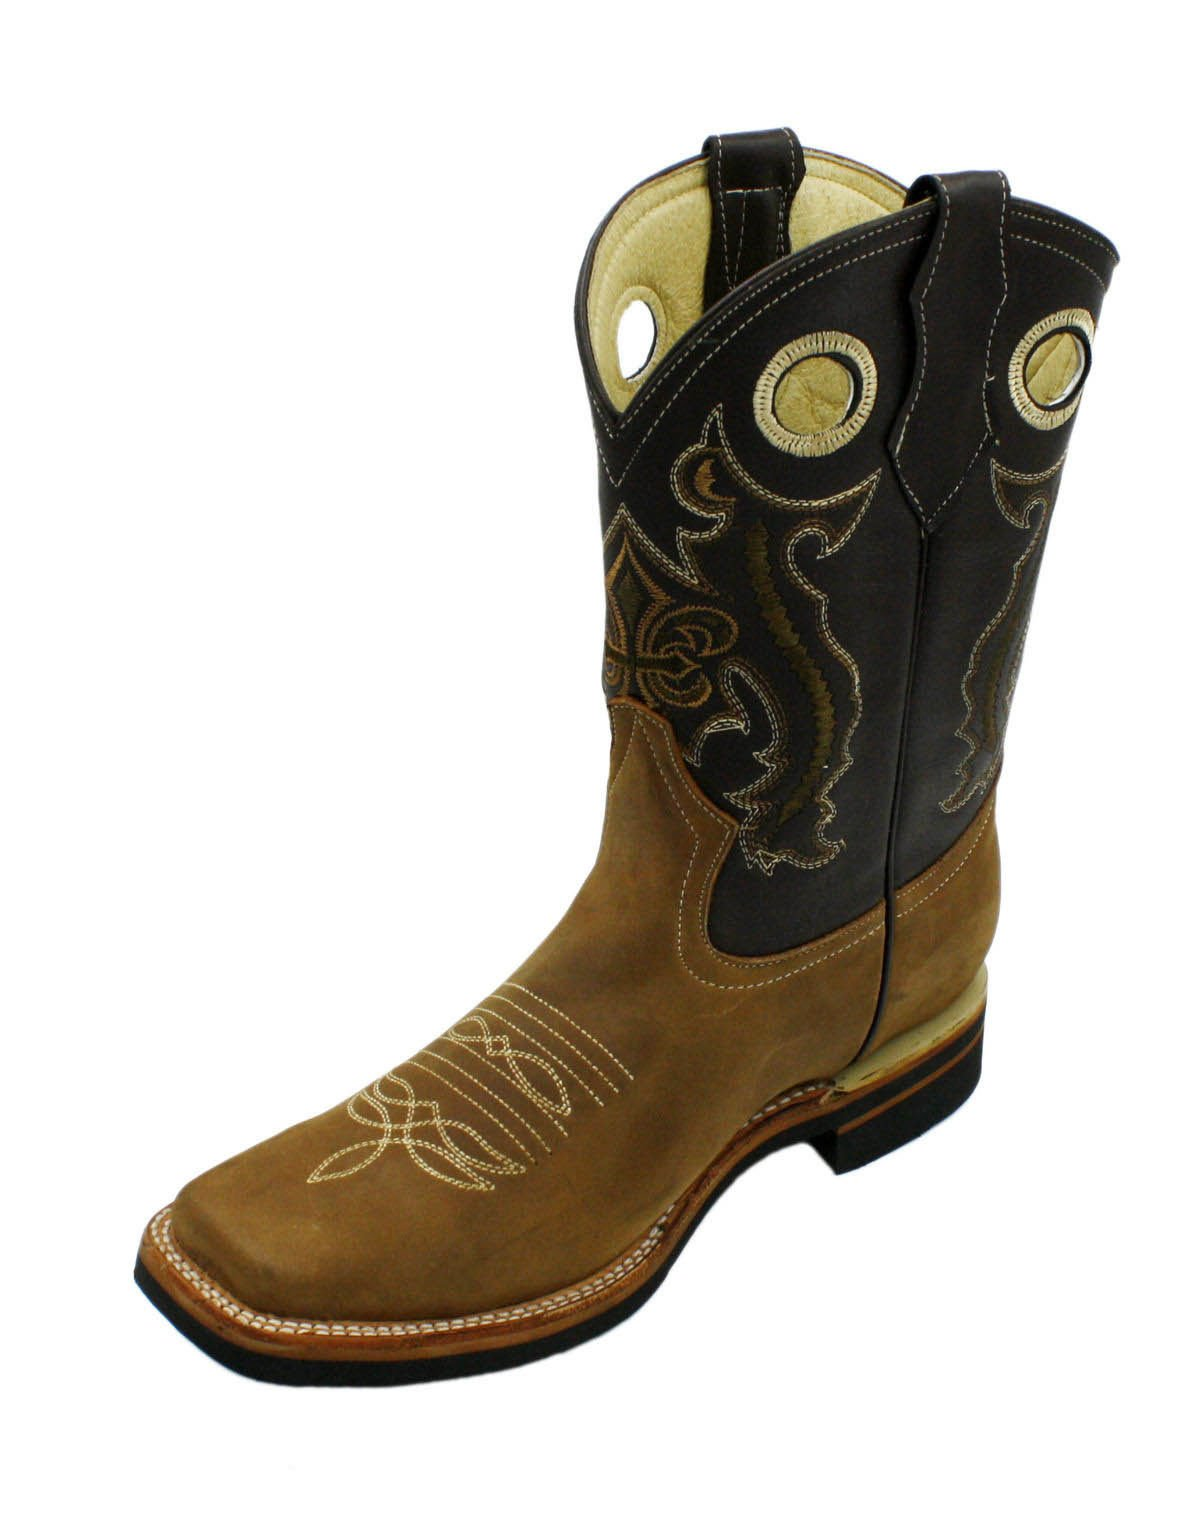 Men Genuine Cowhide Leather Square Toe Western Cowboy Boots Tan Brown 7.5